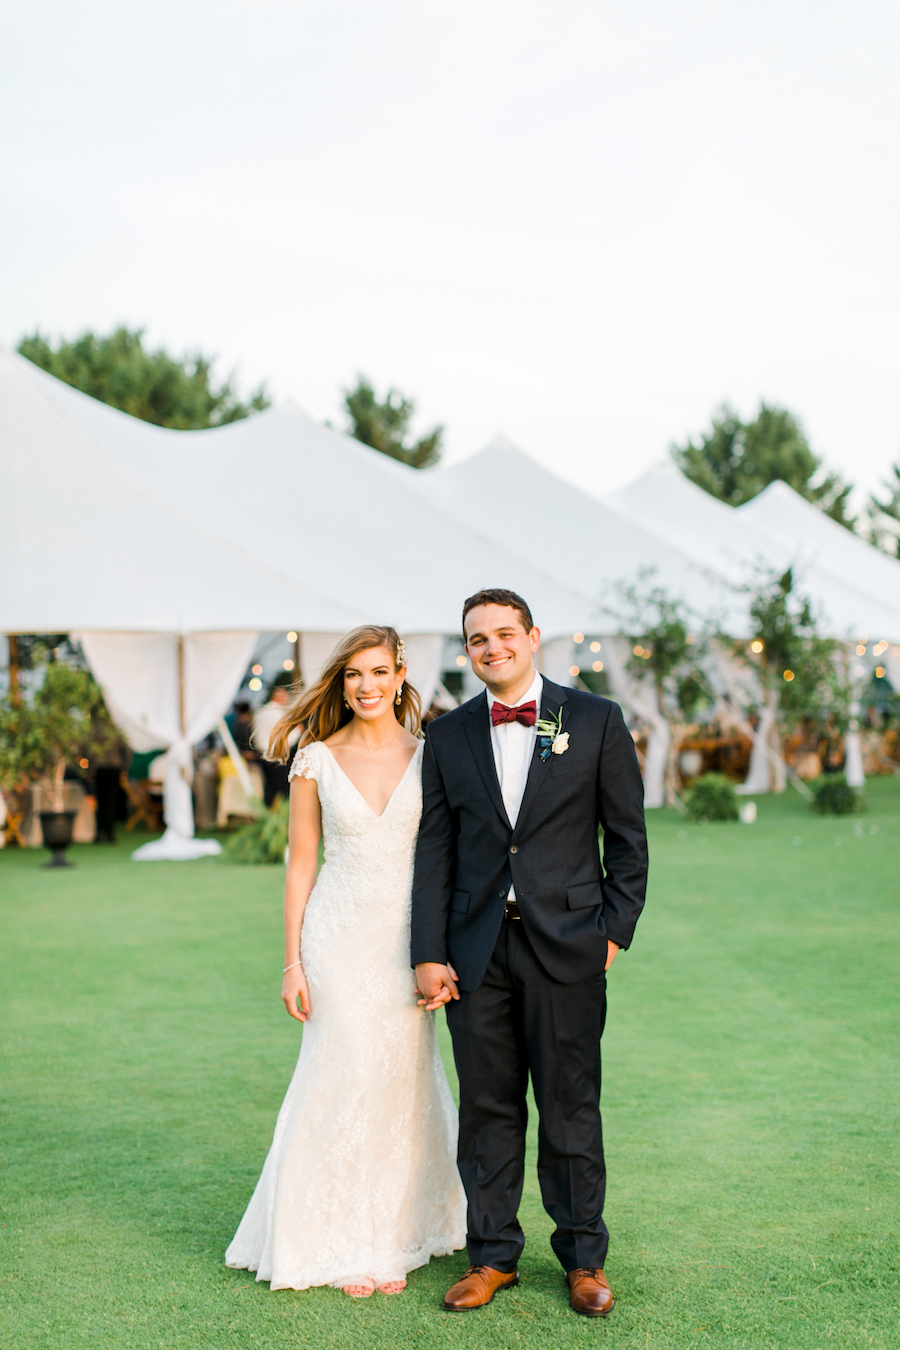 A couple smiling in front of their wedding tent